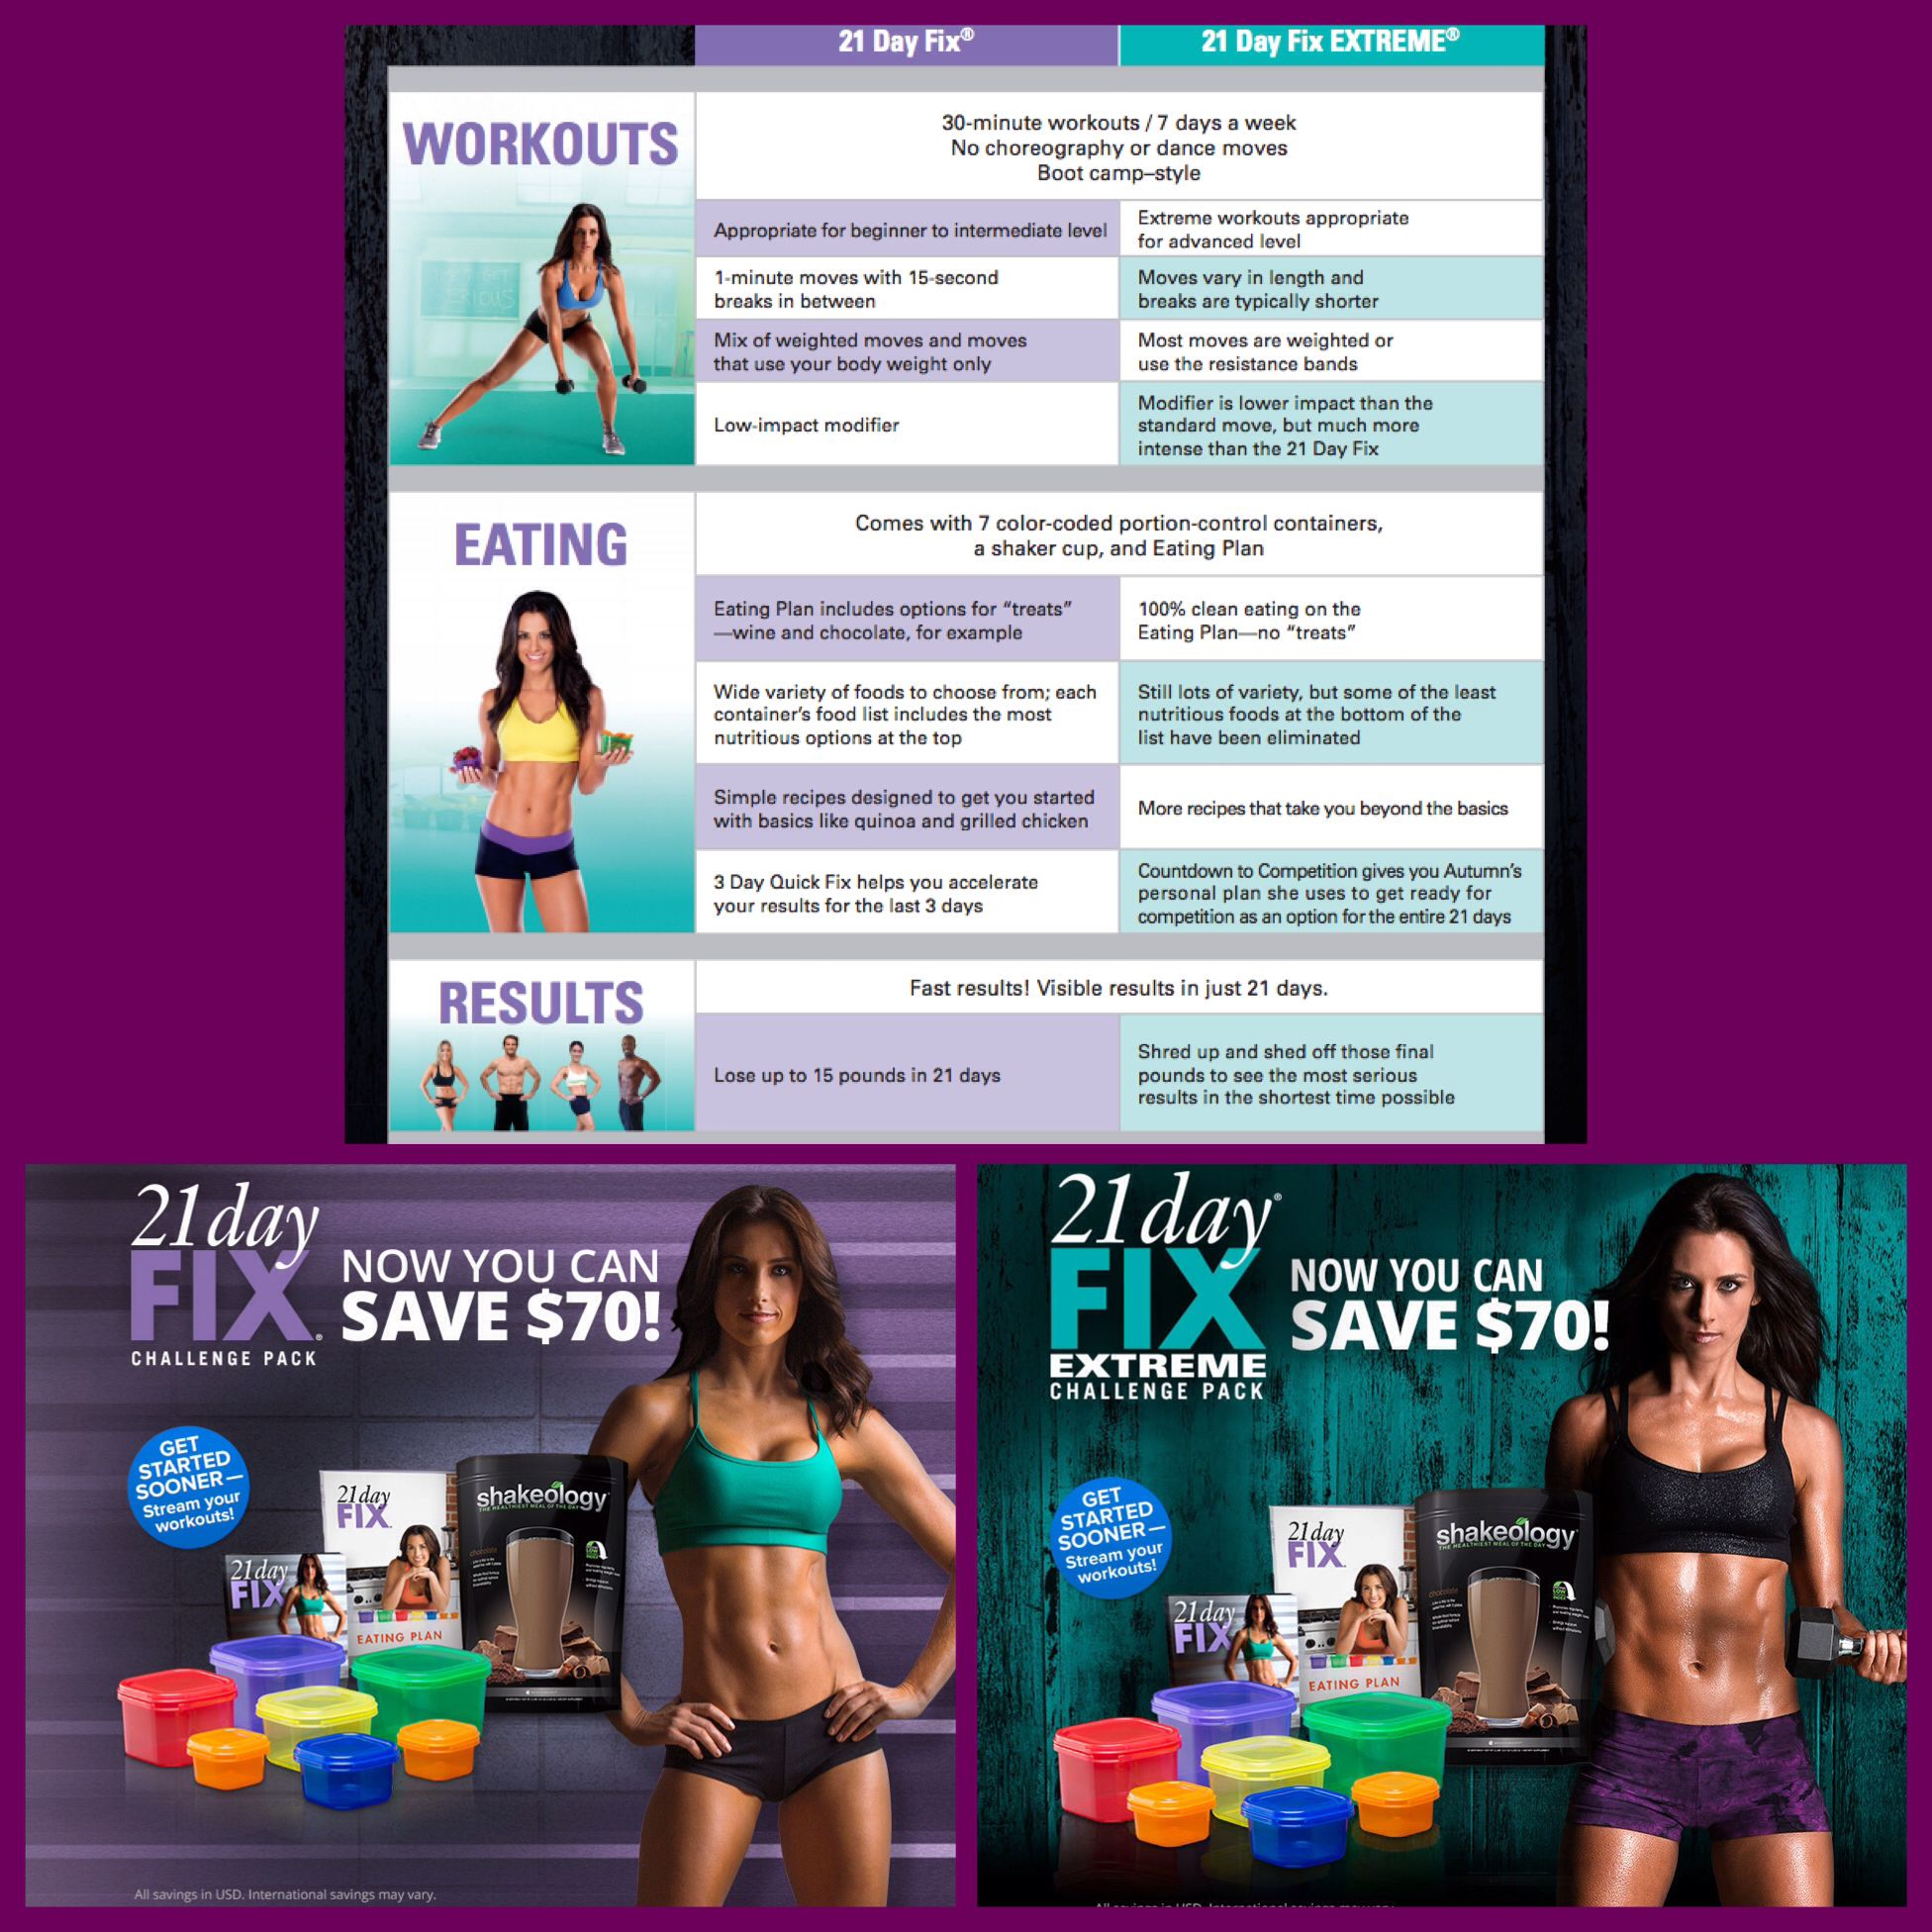 In the month of June save big when you order the 21 Day Fix or 21 Day Fix Extreme Challenge Packs! Get your body summer ready and your portions and nutrition on the right track! Order using this link and I will be your support coach: http://www.beachbodycoach.com/esuite/home/KRISTINNELSON09#